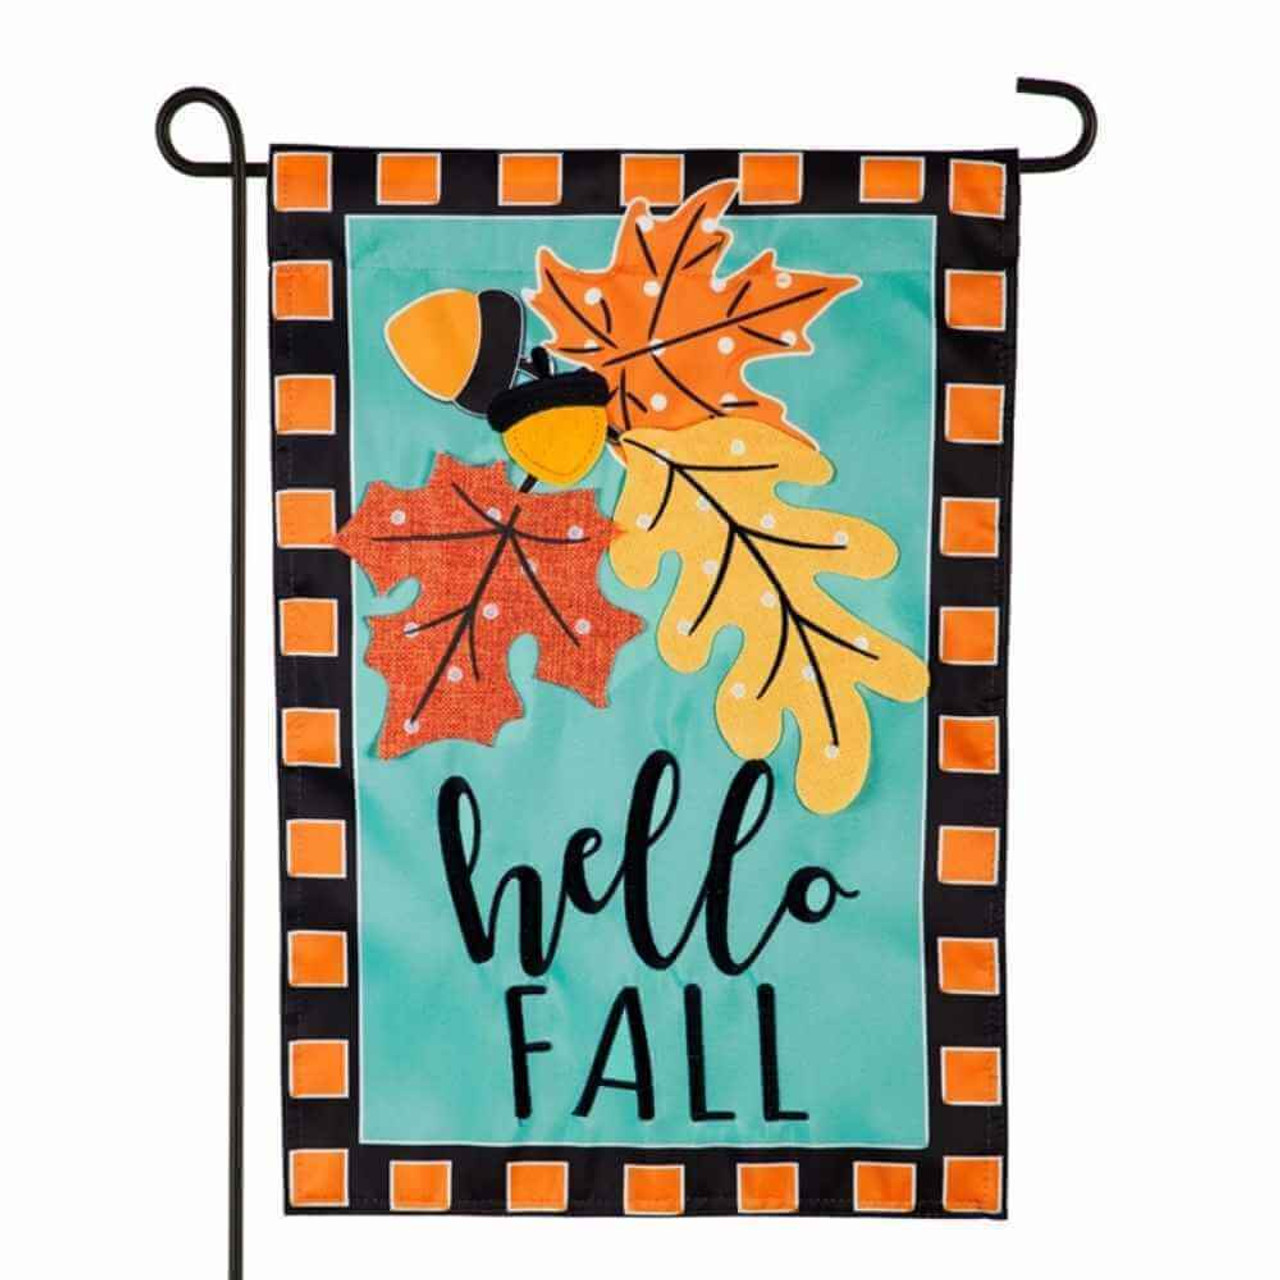 """The Hello Fall garden flag measures 12.5"""" wide by 18"""" tall. The fall flag features 3 fall leaves, burnt orange, tangerine orange and goldenrod yellow and 2  brown acorns individually appliqued to a turquoise sky blue background.  Below the fall fauna bouquet are the words hello in script and fall in block lettering.  The garden flag is surrounded by a black frame  with orange squares patterned onto it. Flag is shown on a black garden flagpole."""